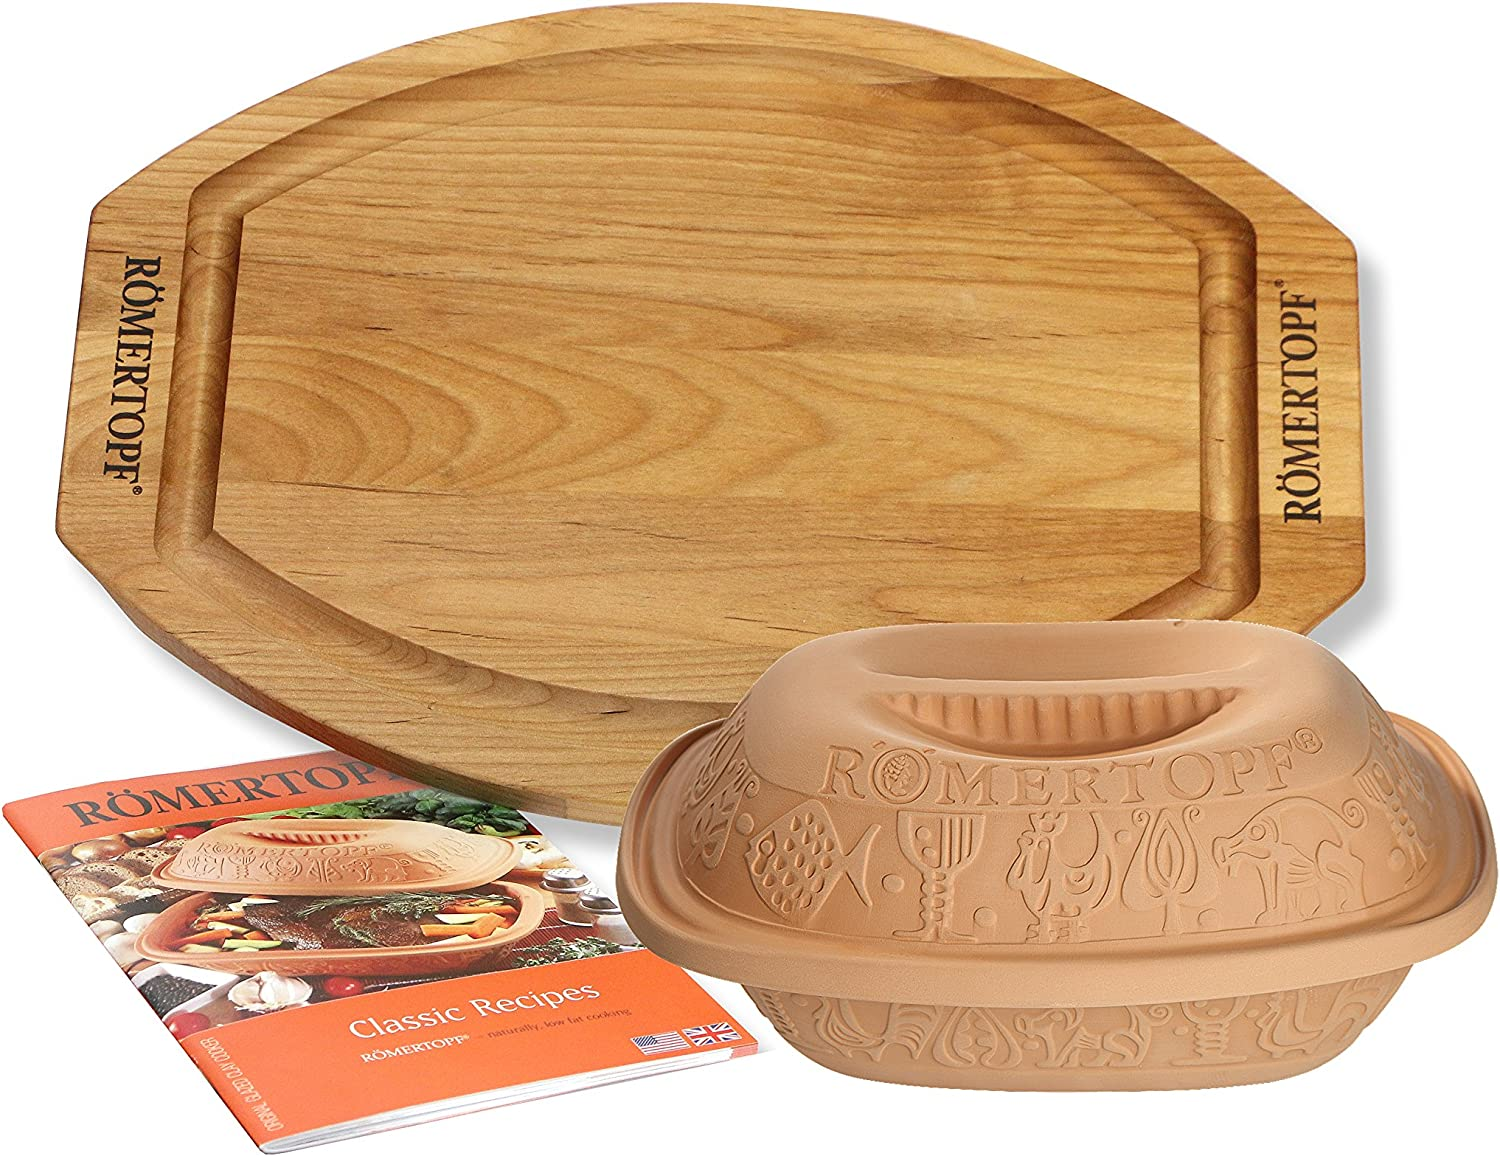 Romertopf Classic Clay Cooker Set with Cutting Board and Cookbook, 1.5 quart, Natural